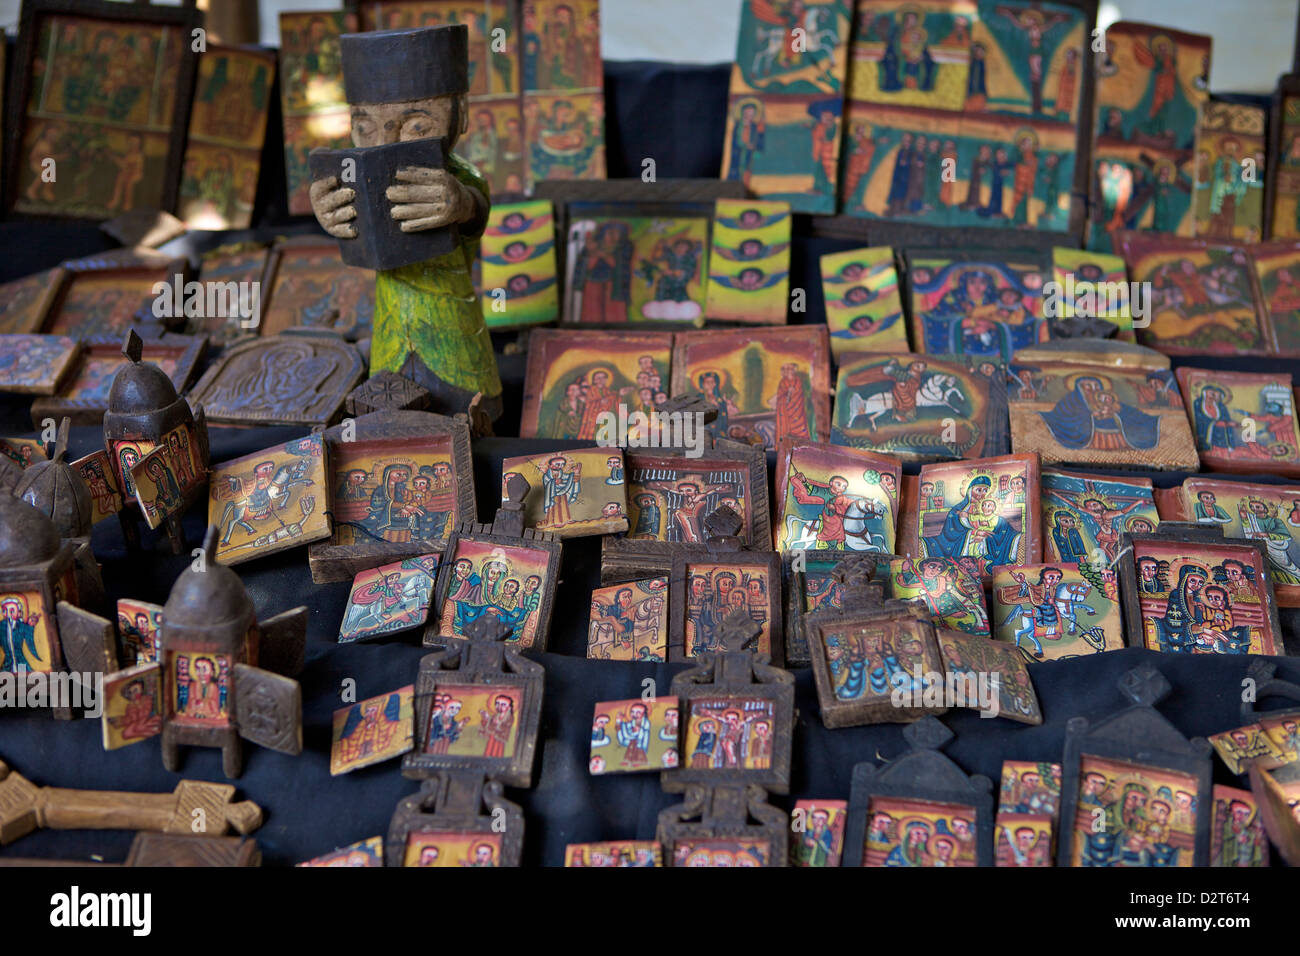 Souvenirs for sale, Zege Peninsula, Lake Tana, Ethiopia, Africa - Stock Image